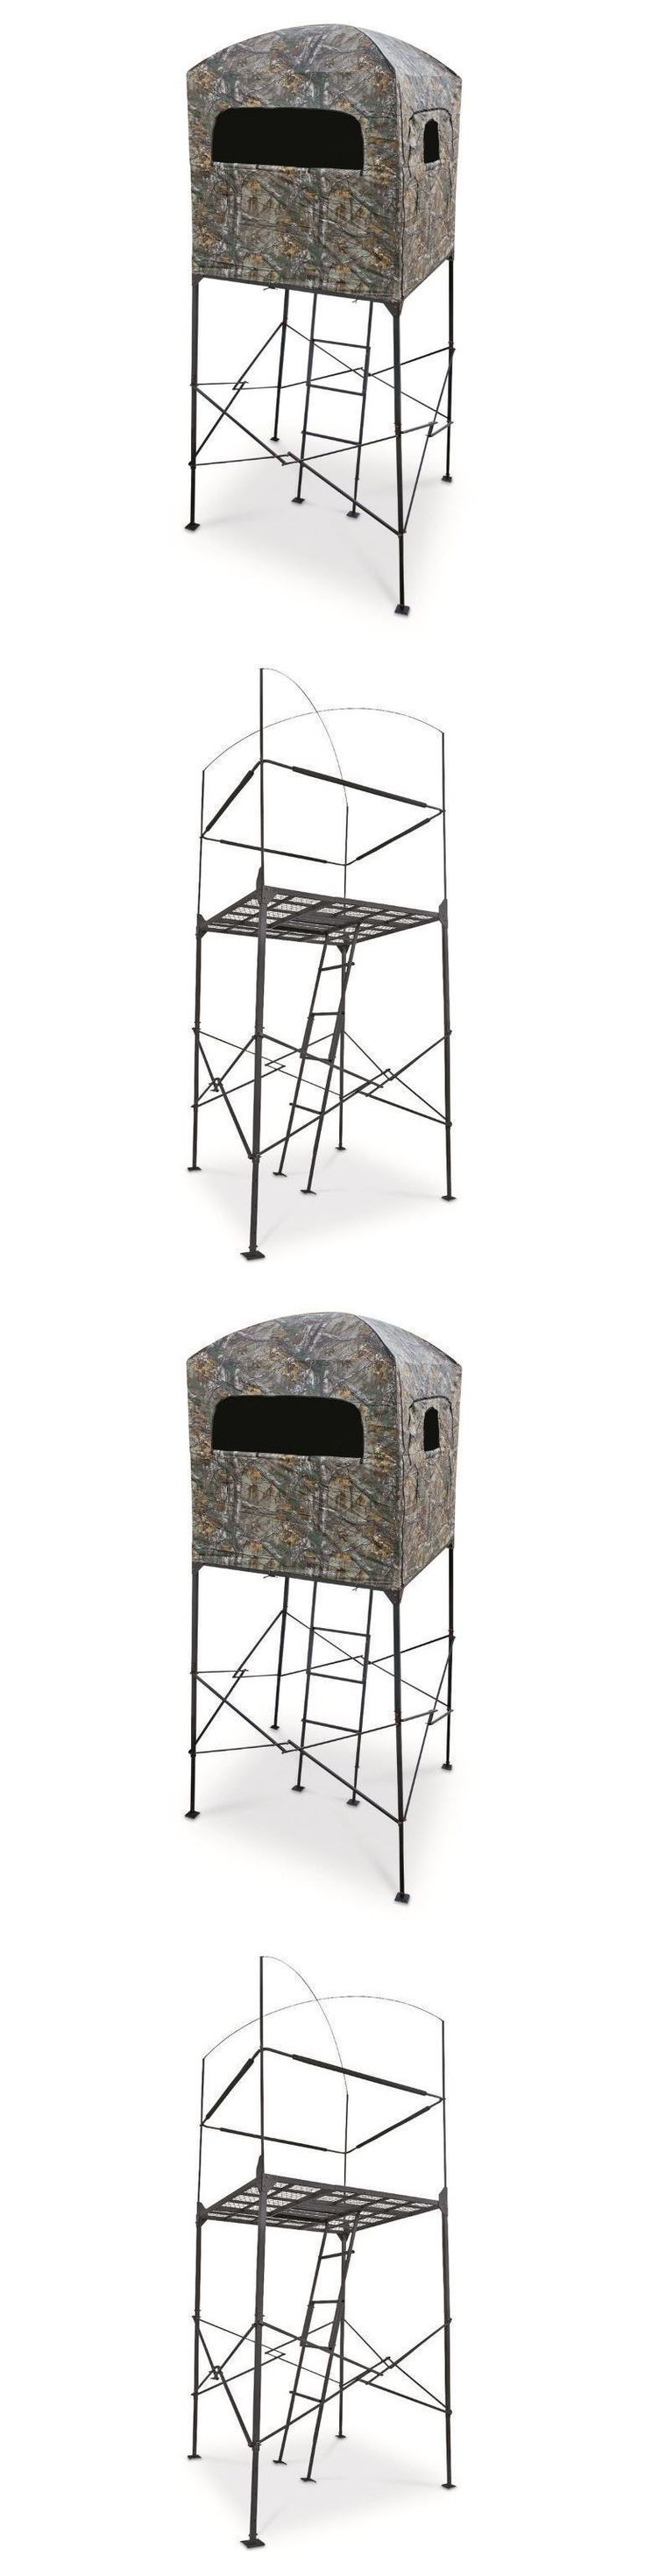 Tree Stands 52508: Deer Stand W Blind 7 Hunting Tree Big Game Ladder Shooting Camo Hunter Quad -> BUY IT NOW ONLY: $398.09 on eBay! #deerhuntingblinds